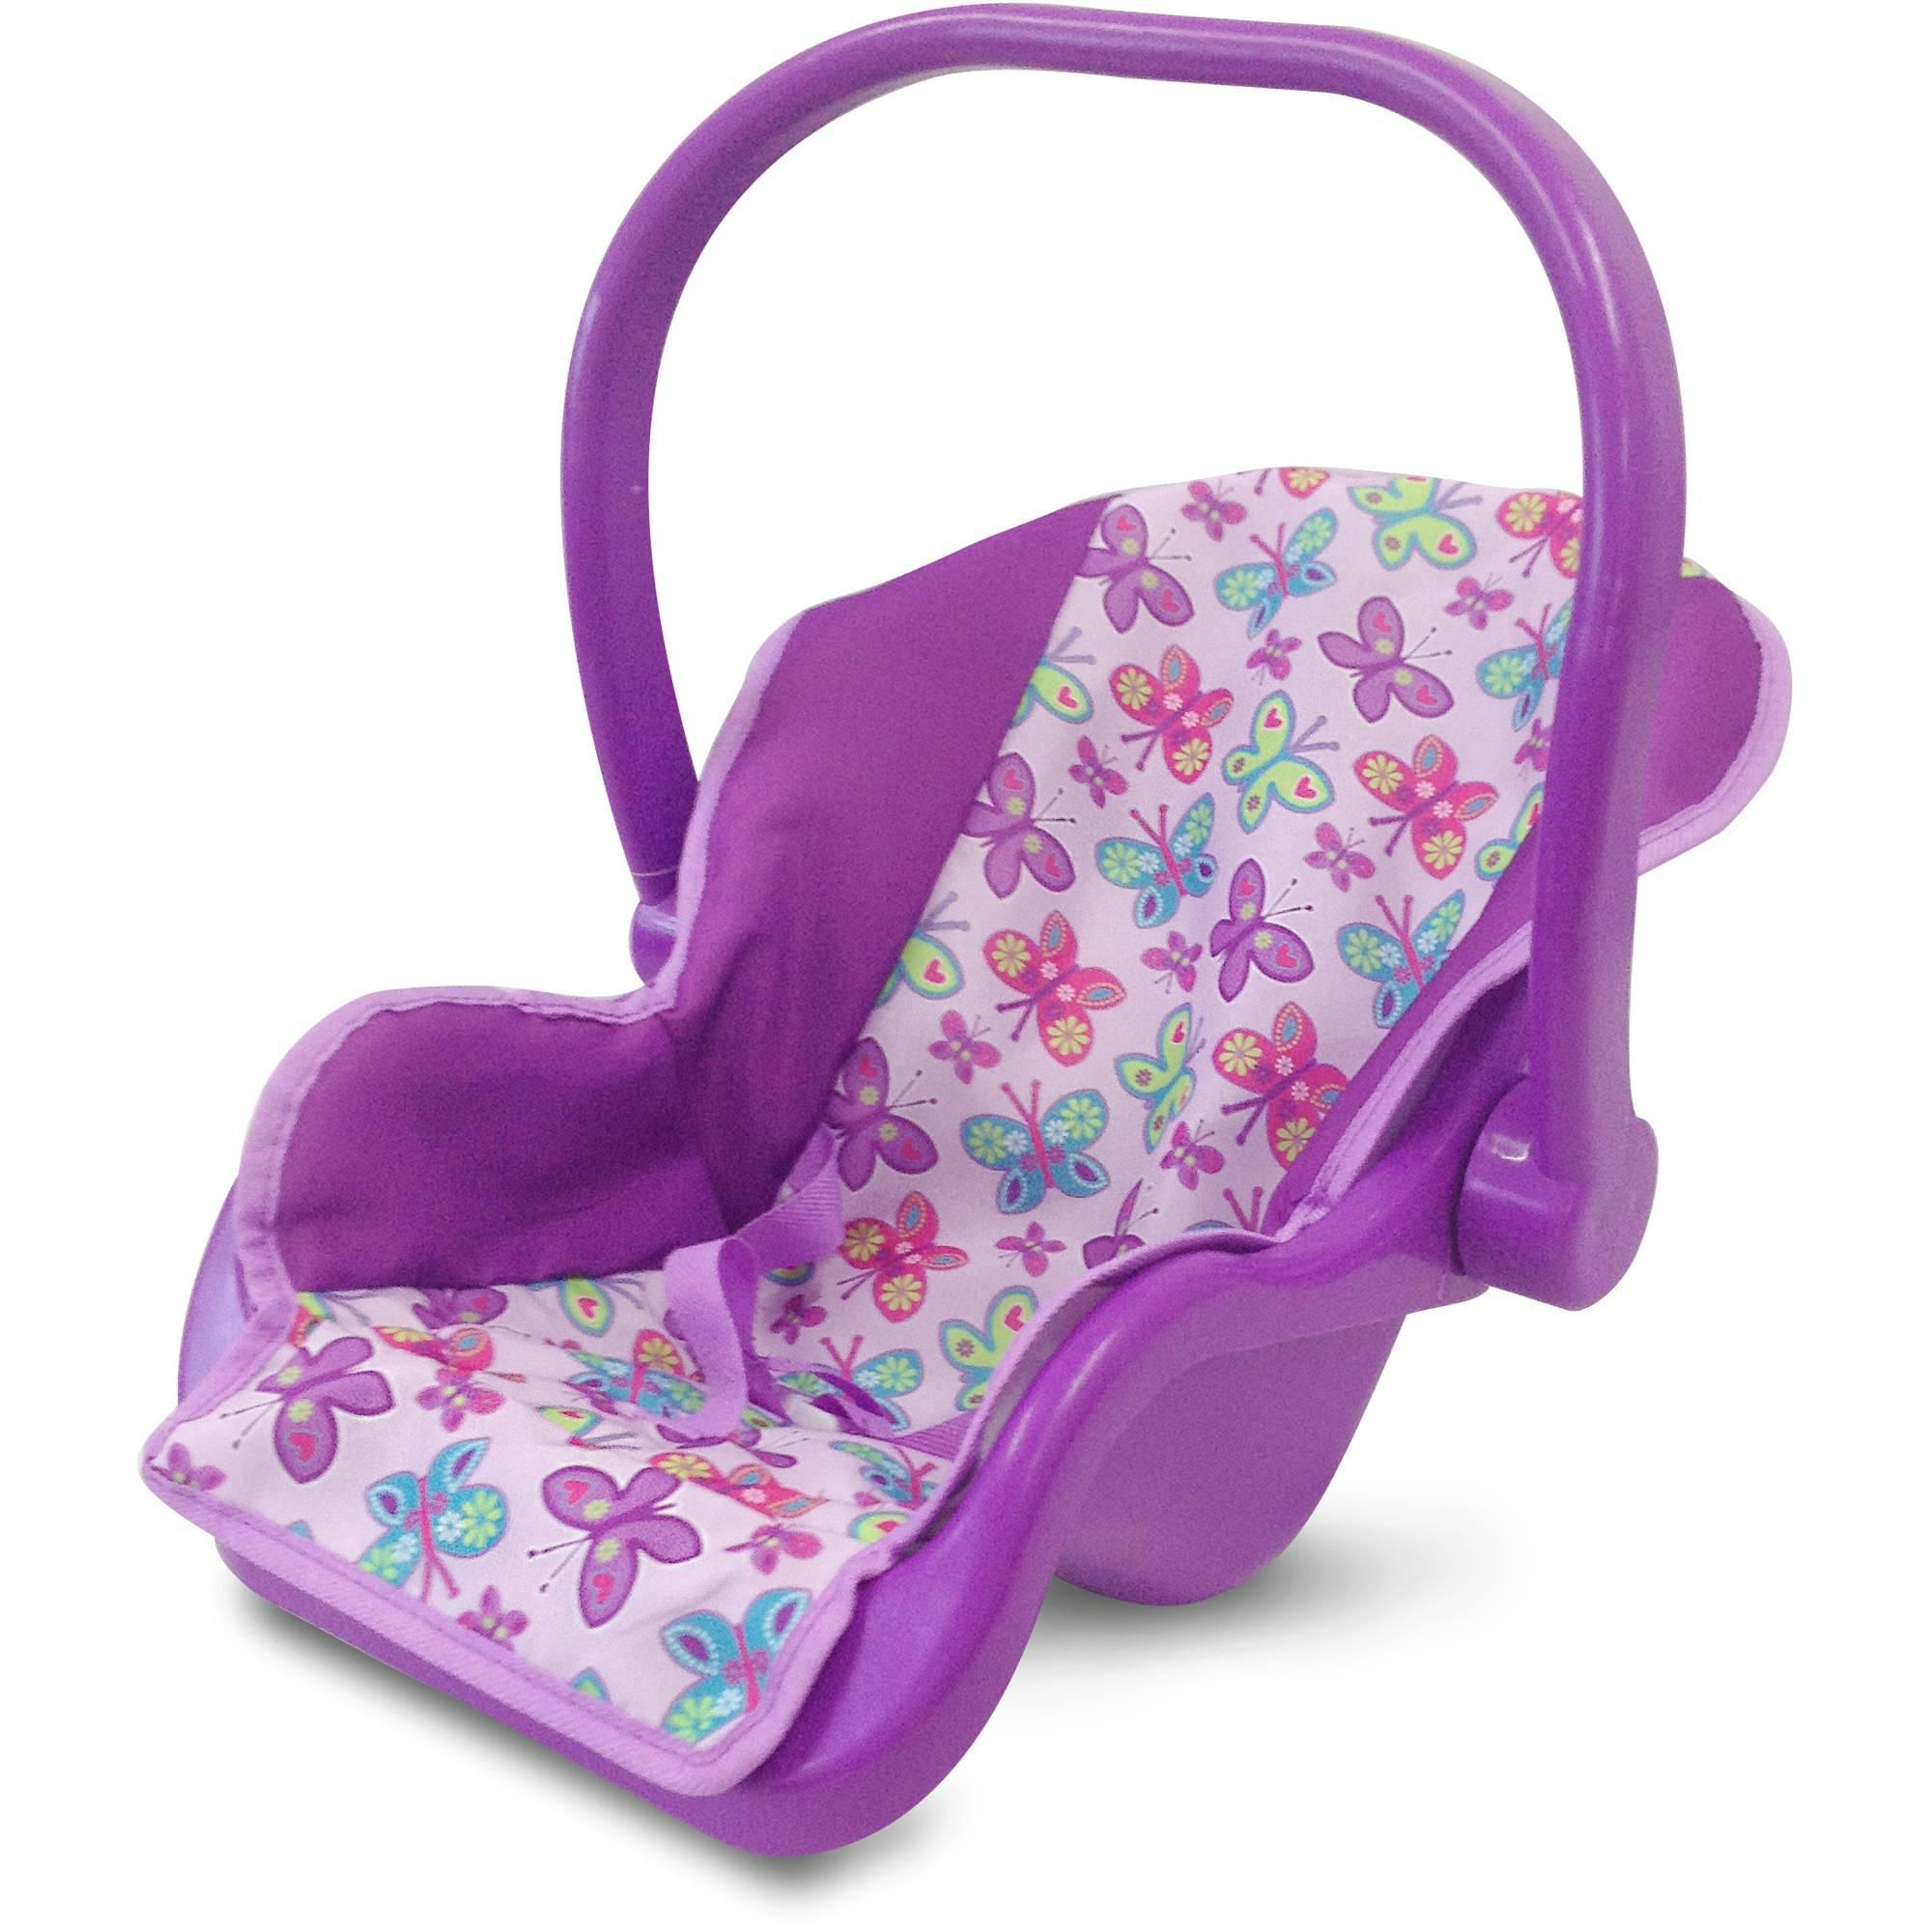 Baby Doll Clothes At Walmart Baby Alive Car Seat Walmart  Google Search  Baby Dolls Shopping